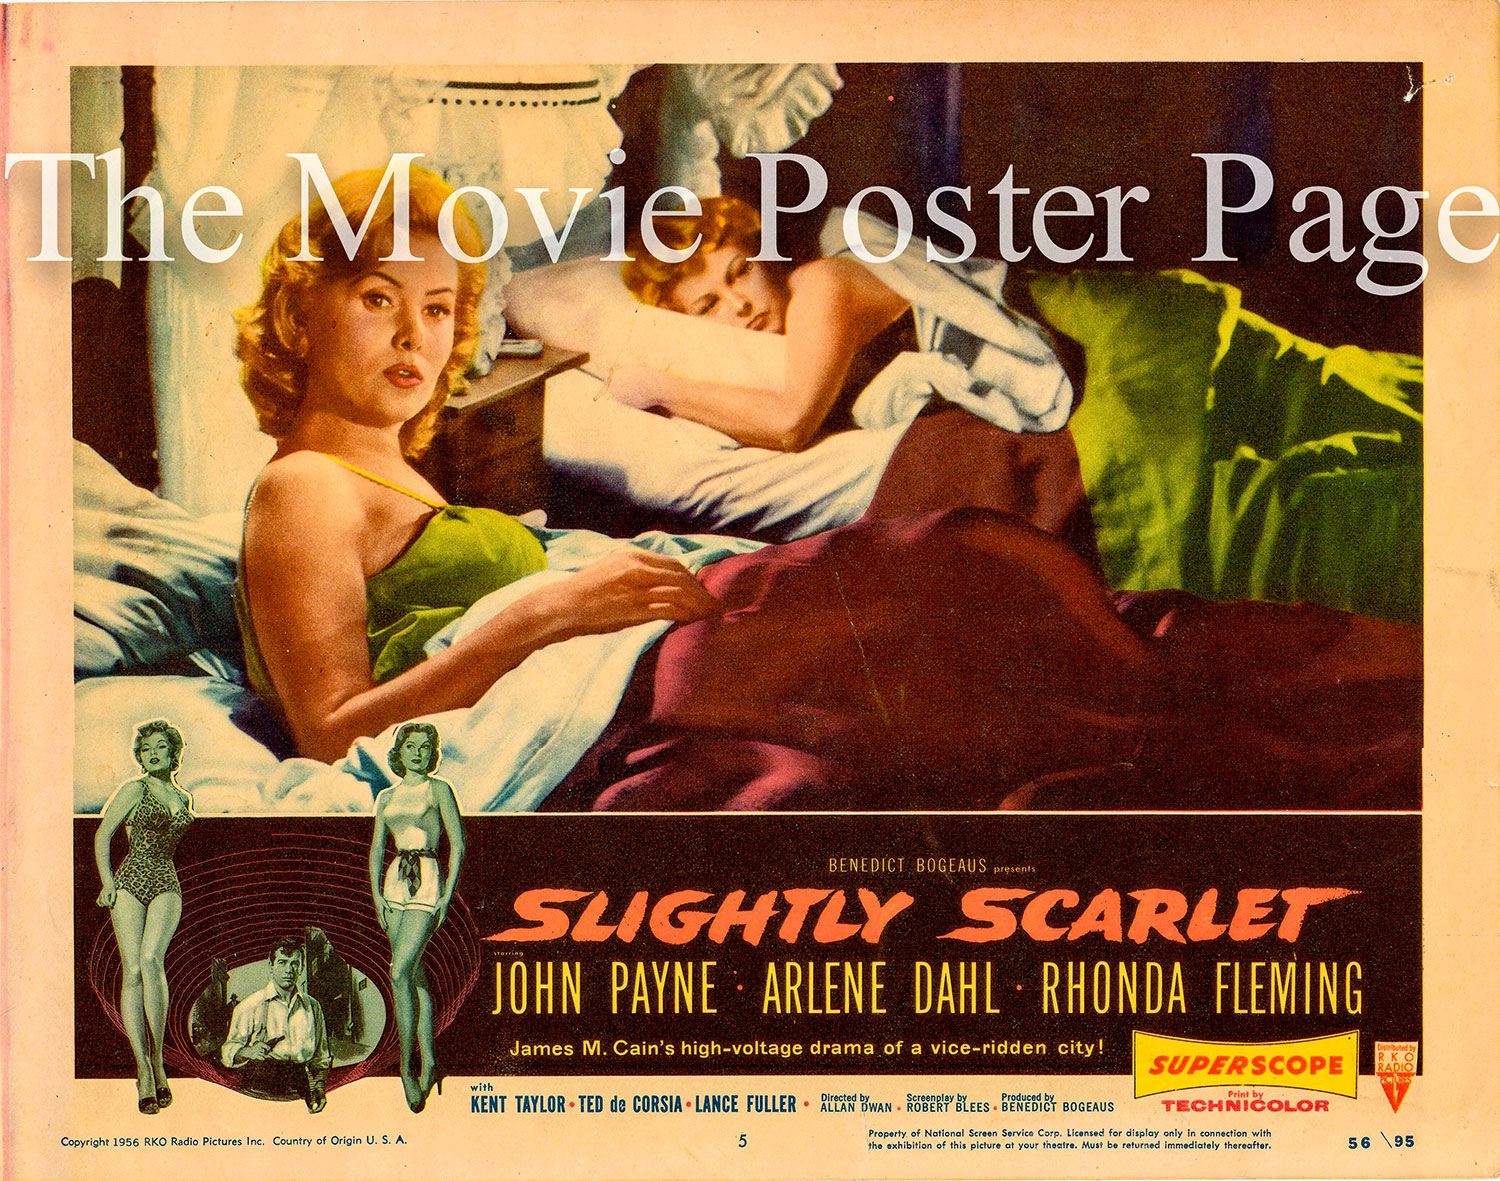 Pictured is a US lobby card for the 1956 Allan Dwan film Slightly Scarlet starring John Payne and Rhonda fleming.